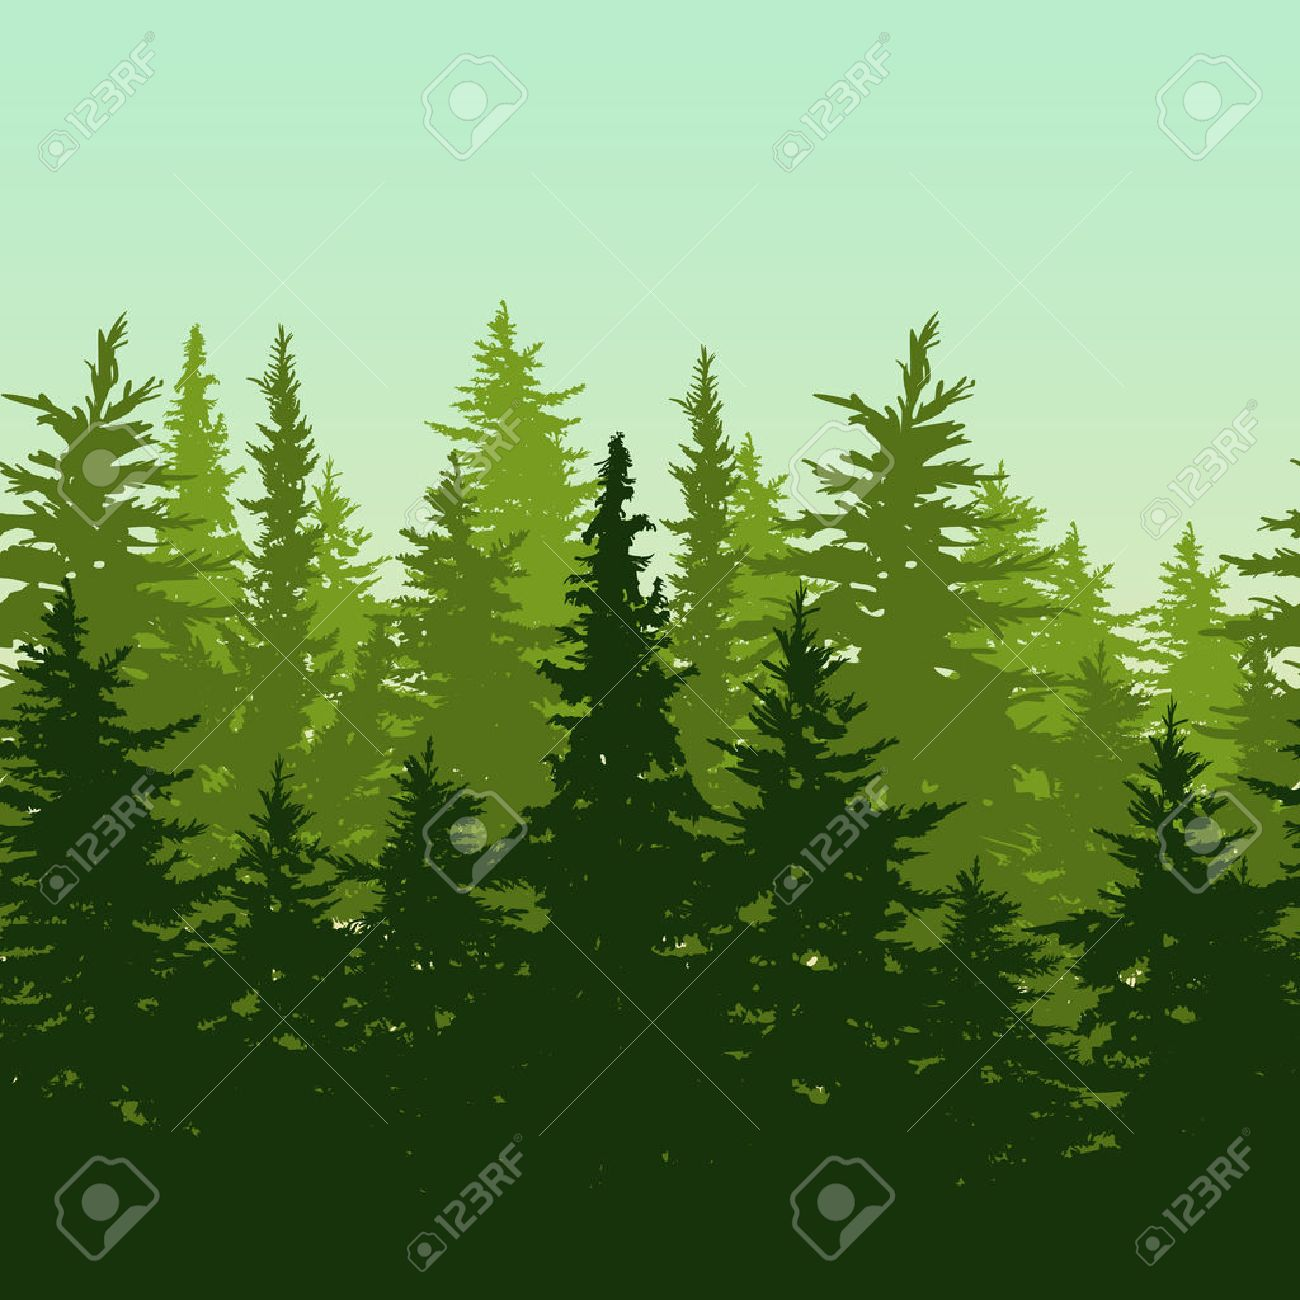 Vector horizontal seamless background with green pine or fir-tree forest. Nature background with evergreen trees. Design concept for environmental, ecology, protection nature or travel themes. - 52161364